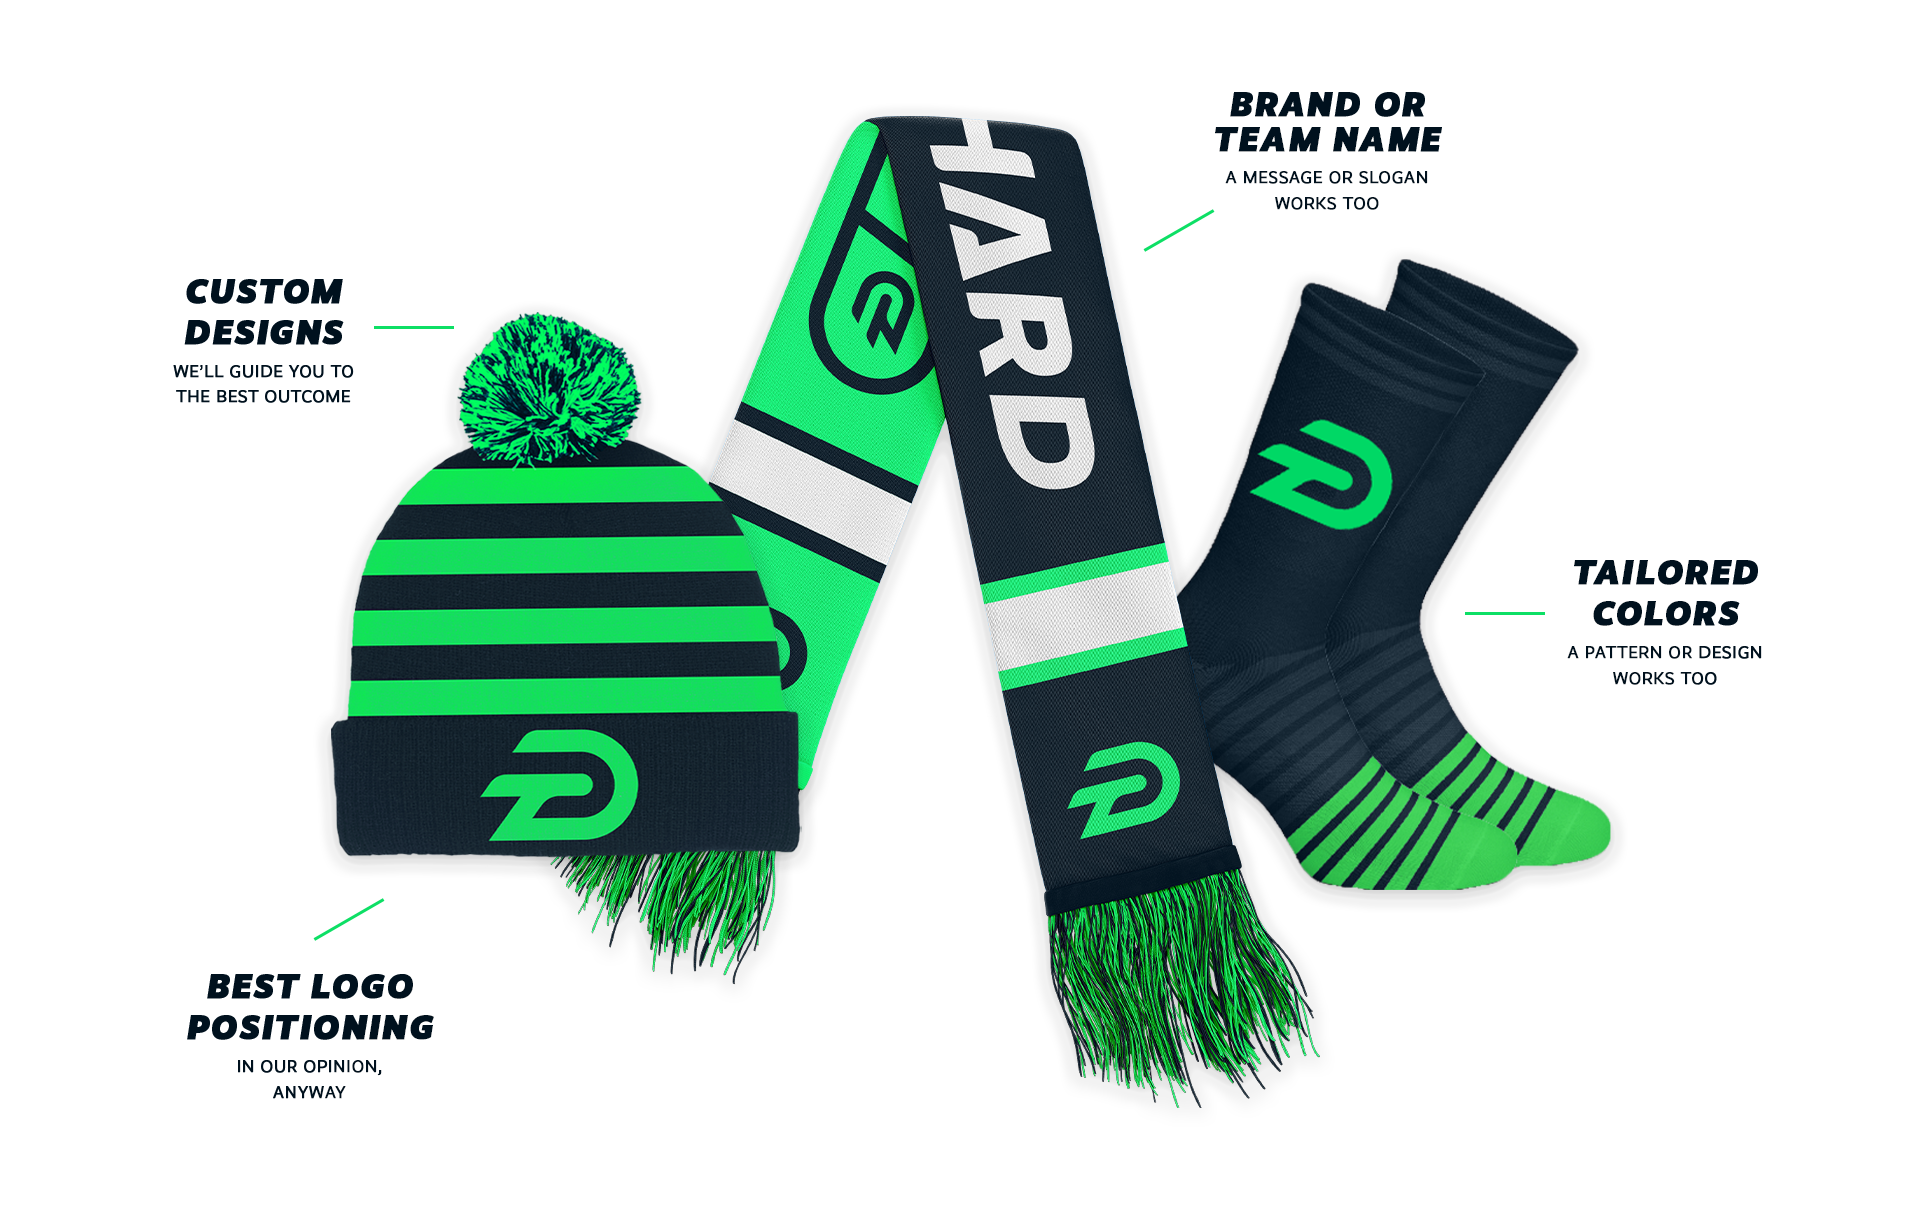 A mock up sample custom beanies, scarves, socks design branded with logo, colors, and messaging